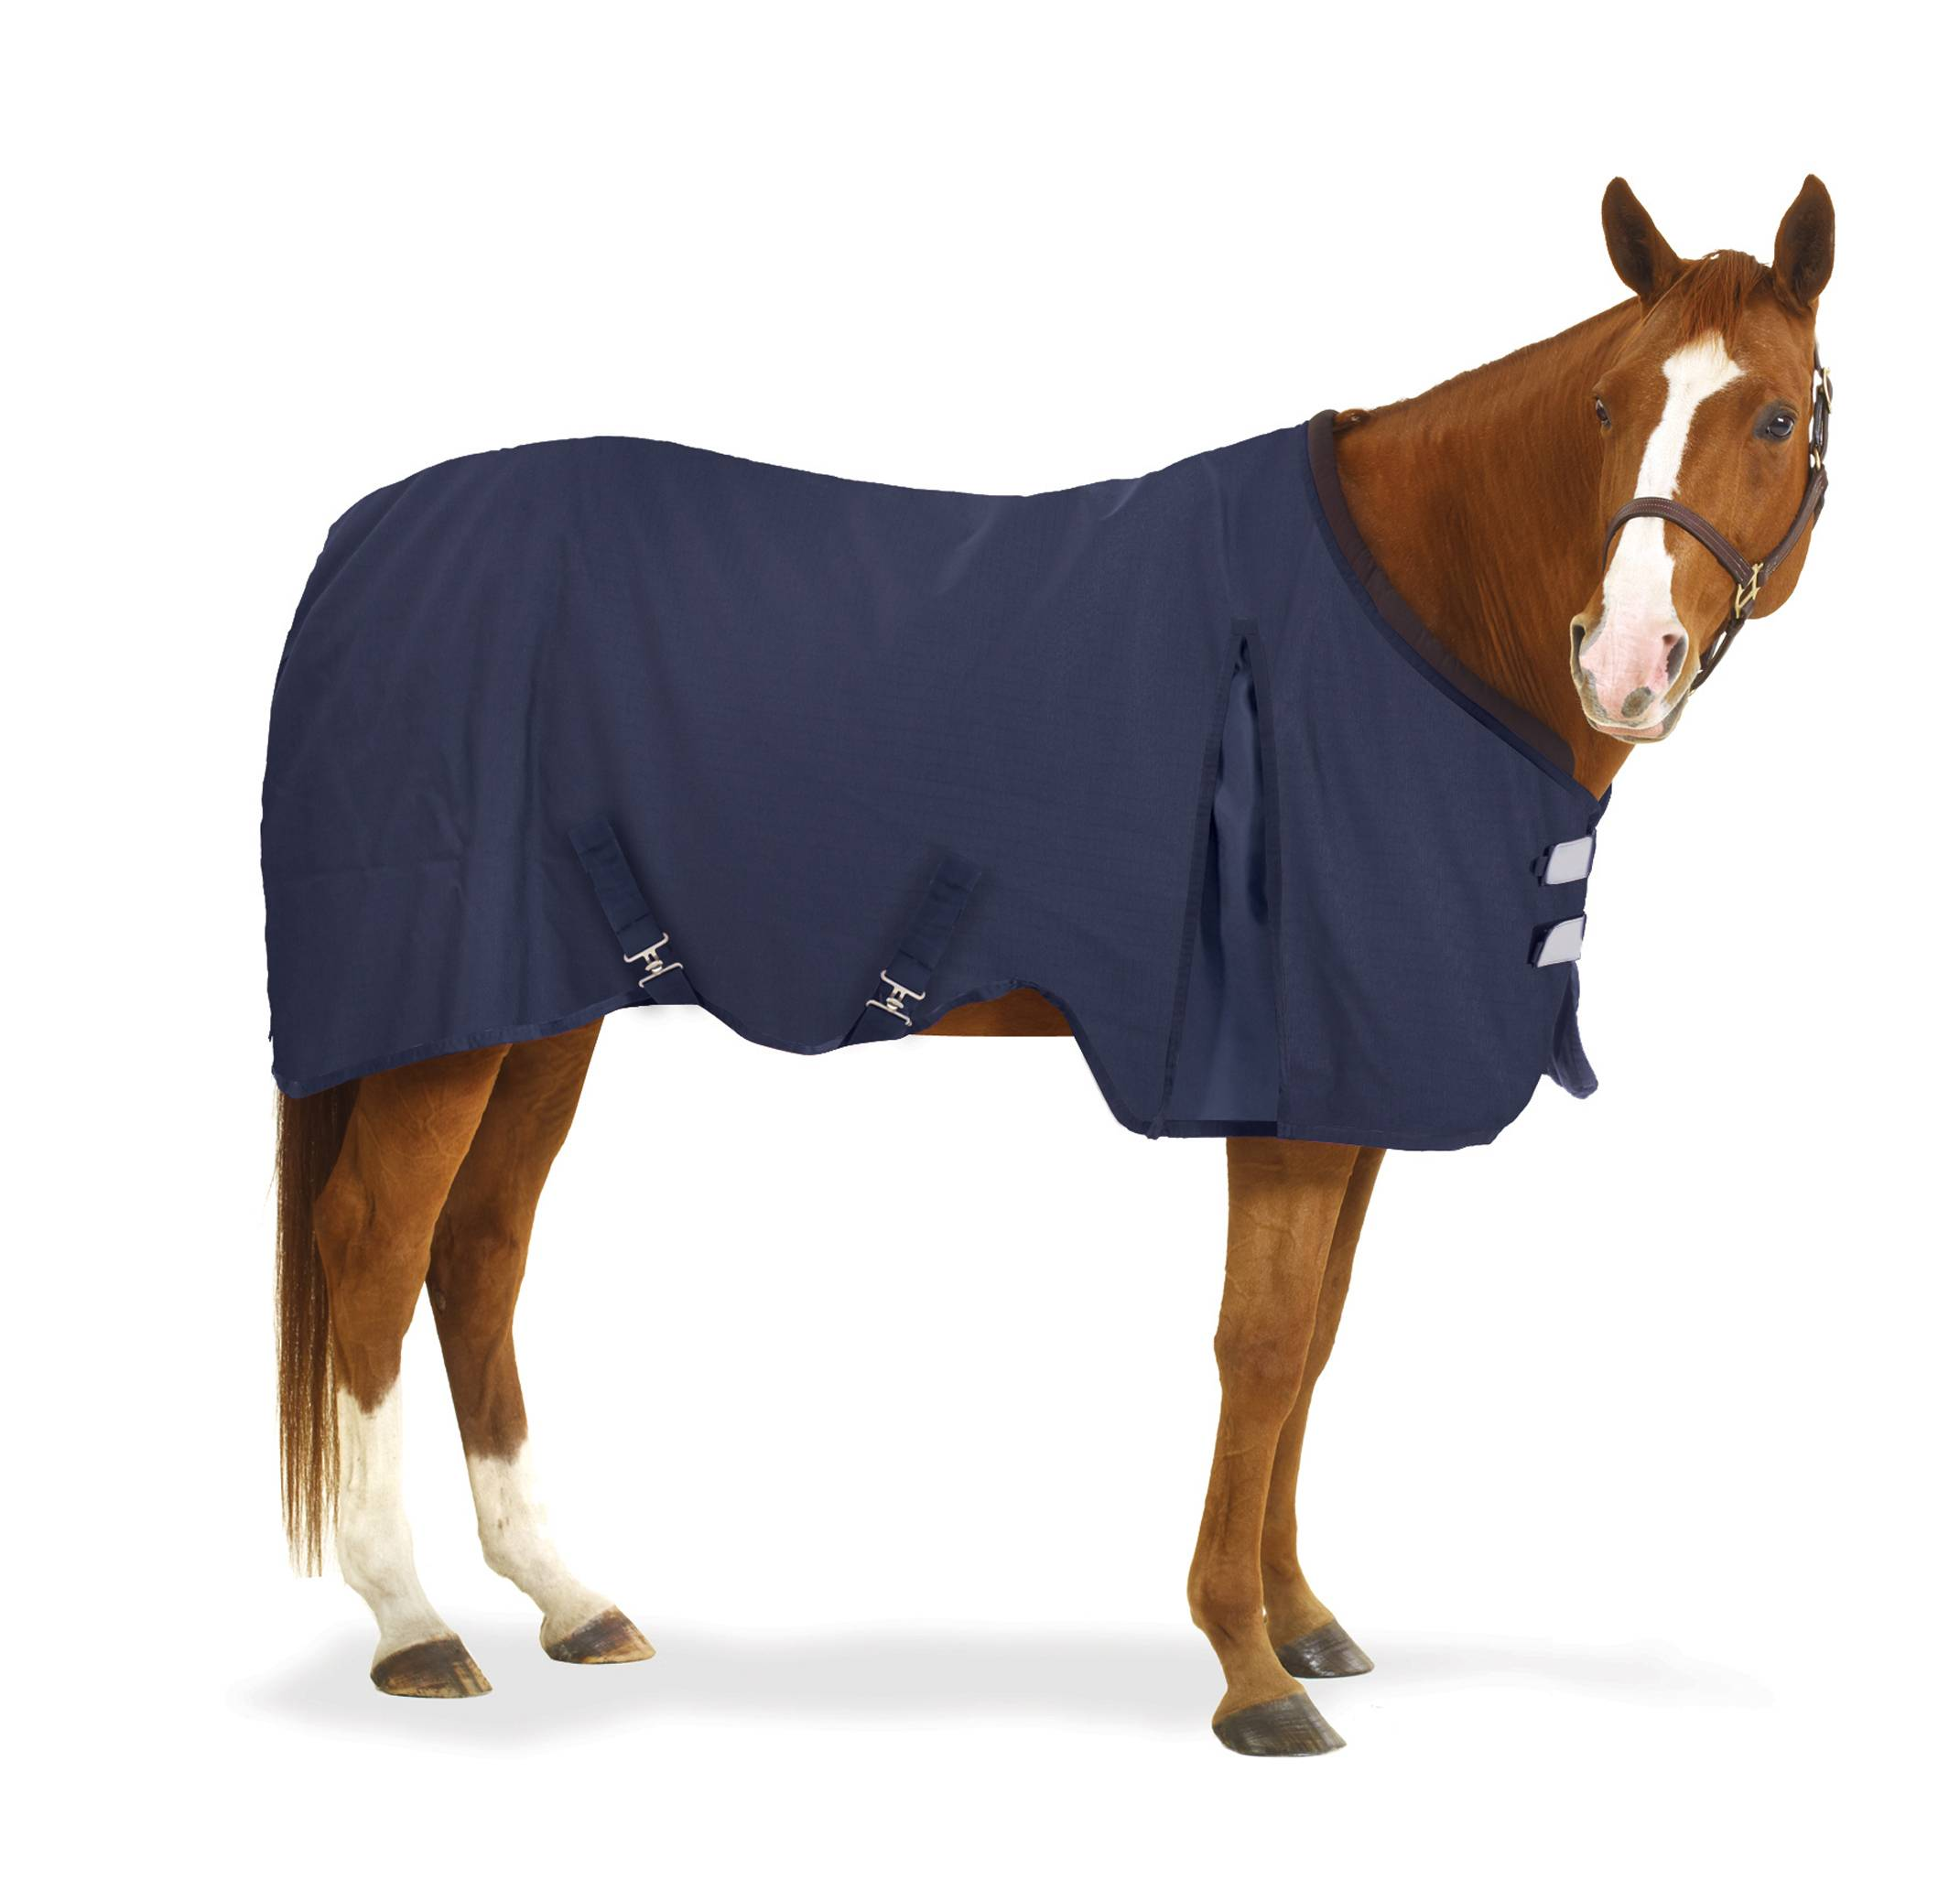 Equi-Essentials EZ-Care Stable Sheet - Solid Colors